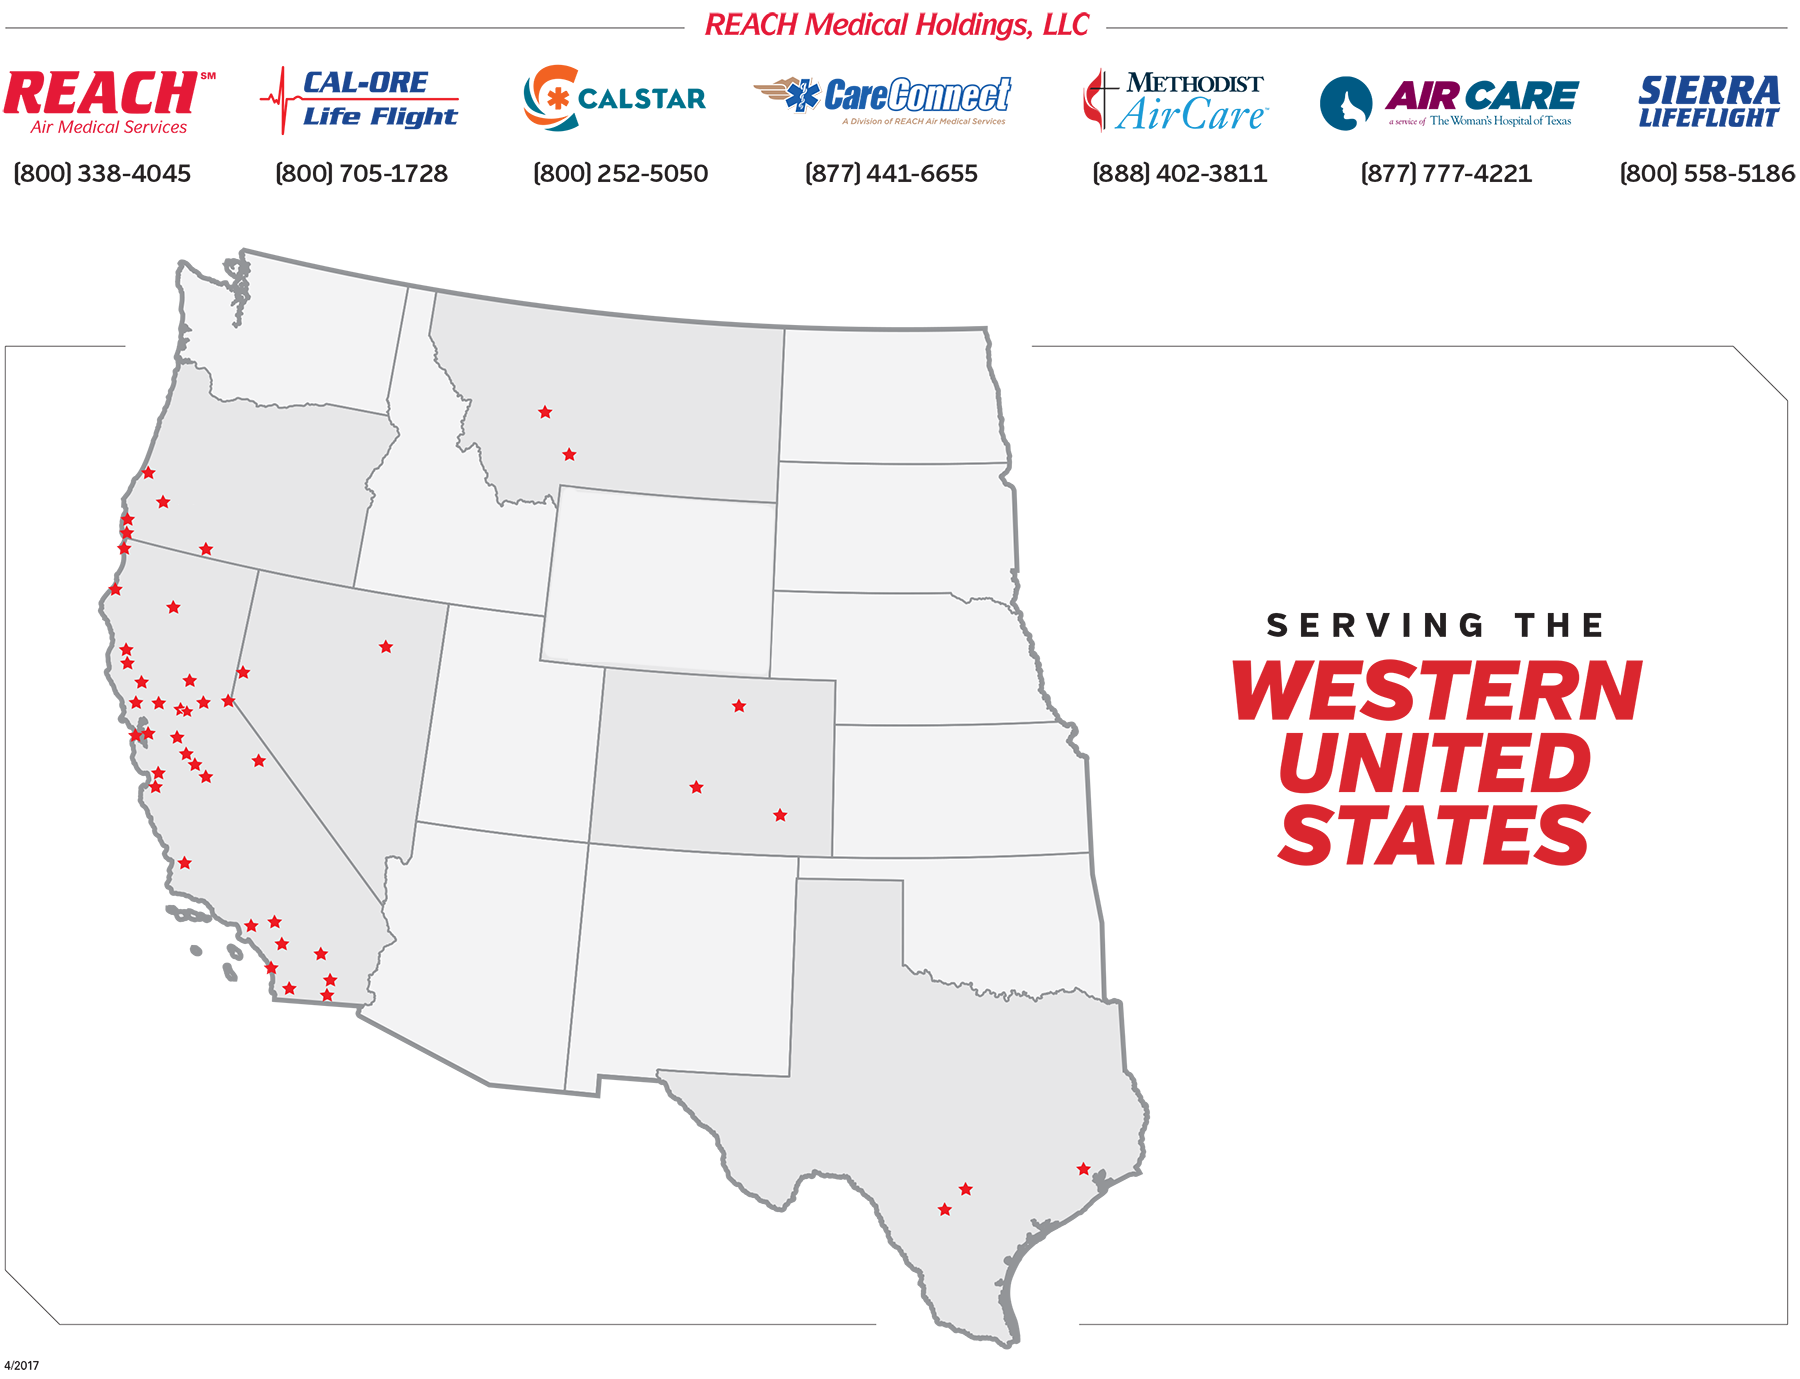 This map shows the location of all REACH, Cal-Ore, CALSTAR, CareConnect, Methodist AirCare, Sierra Lifeflight, and Woman's Air Care base locations.